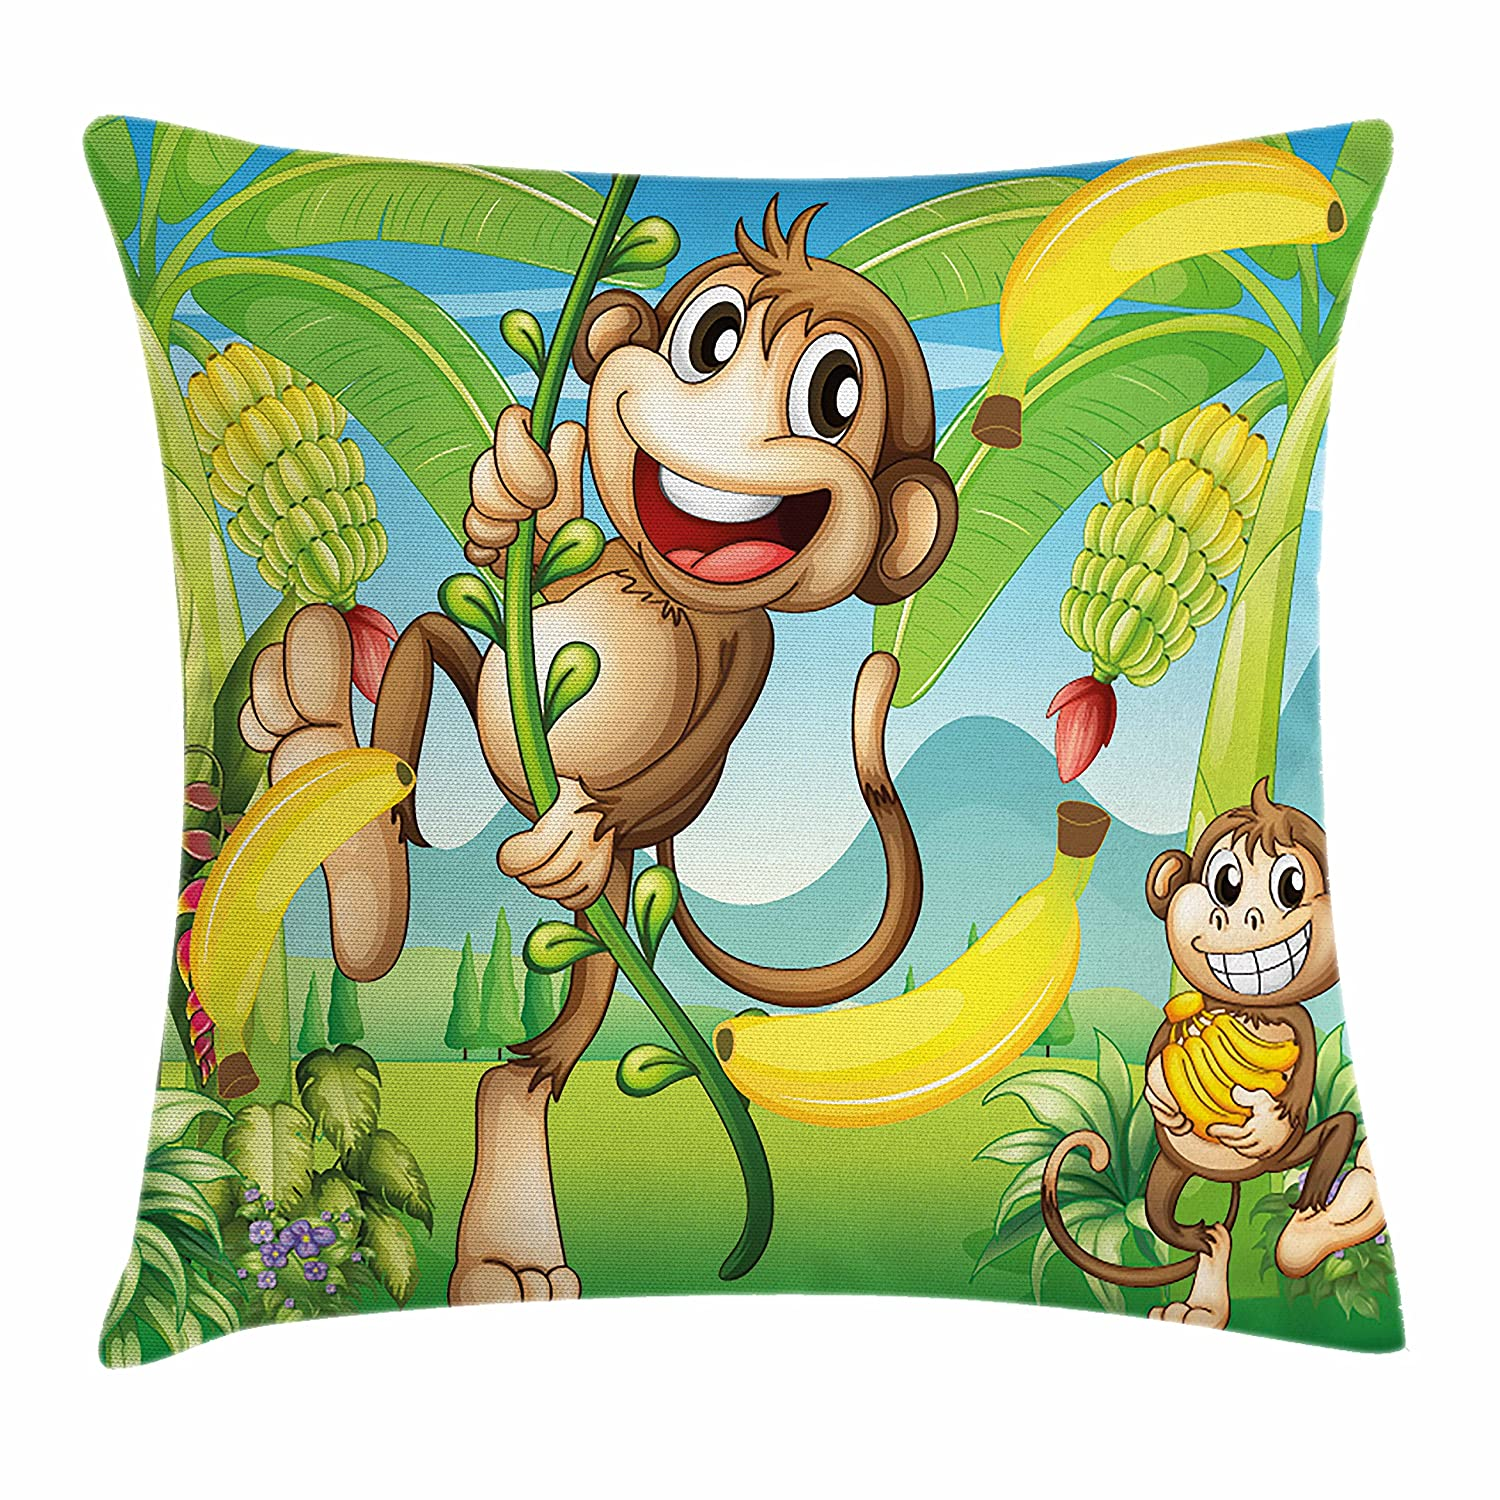 Multicolor Two Monkeys Near The Banana Plant Tropical Nature Landscape Vine Funny Animals Apes Decorative Square Accent Pillow Case 24 X 24 Inches Ambesonne Nursery Throw Pillow Cushion Cover